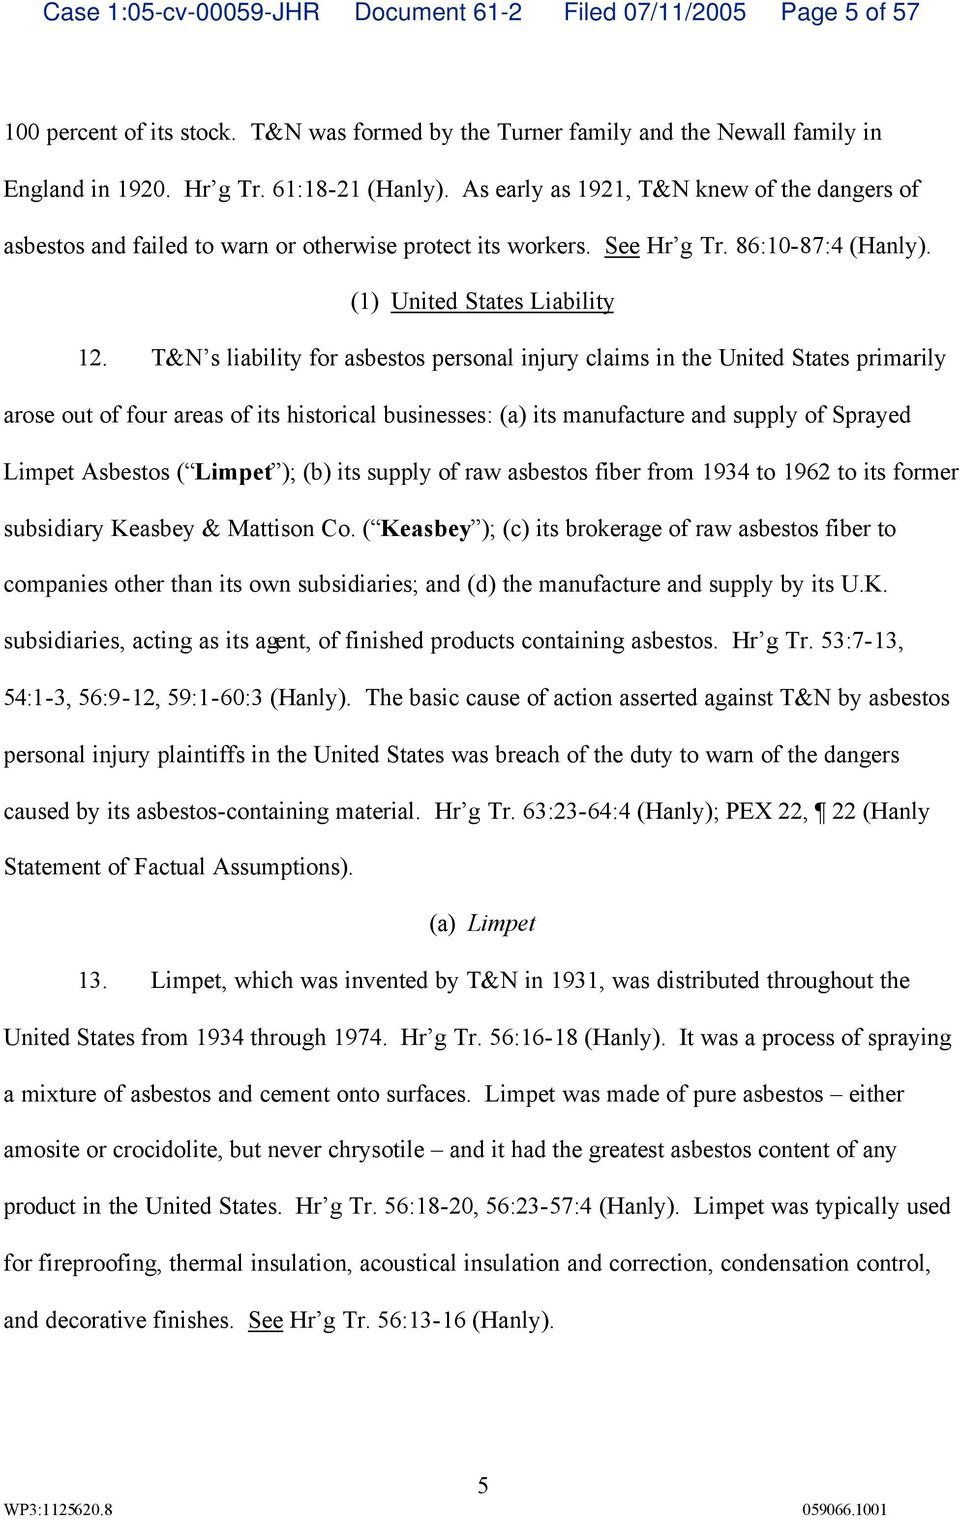 T&N s liability for asbestos personal injury claims in the United States primarily arose out of four areas of its historical businesses: (a) its manufacture and supply of Sprayed Limpet Asbestos (